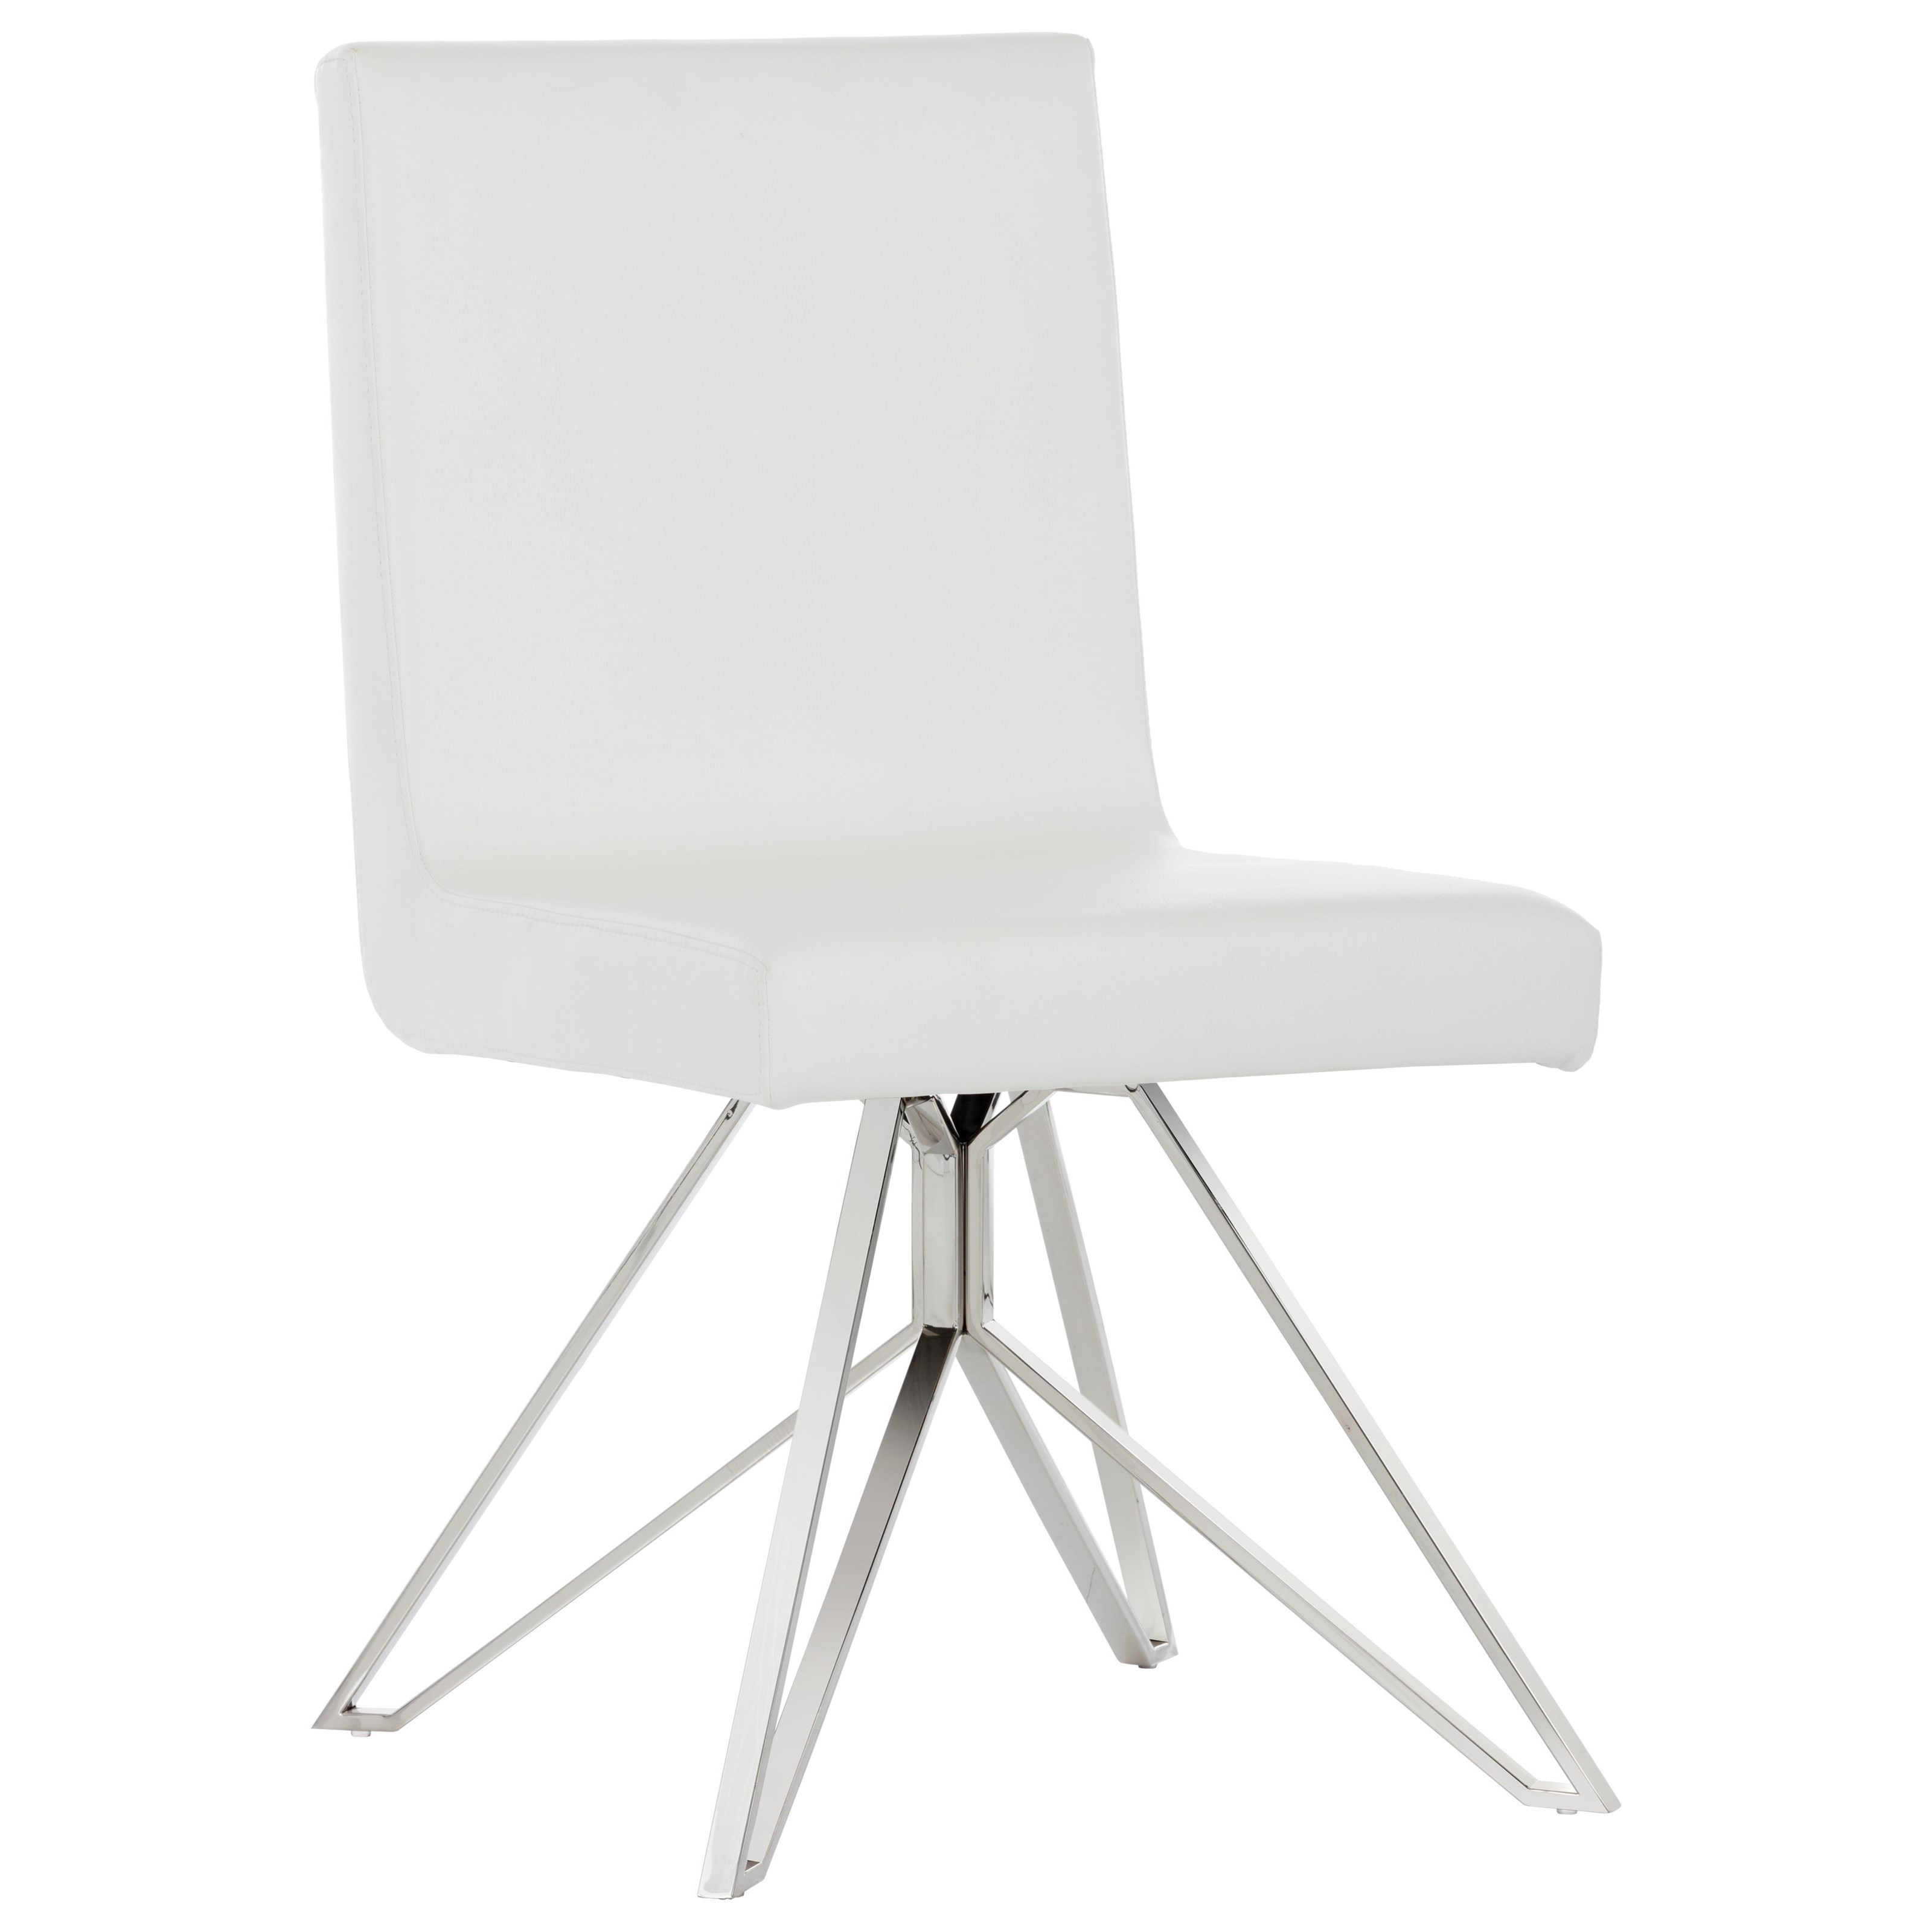 Sunpan Imports IkonClouse Swivel Dining Chair ...  sc 1 st  Stoney Creek Furniture : sunpan chairs - Cheerinfomania.Com